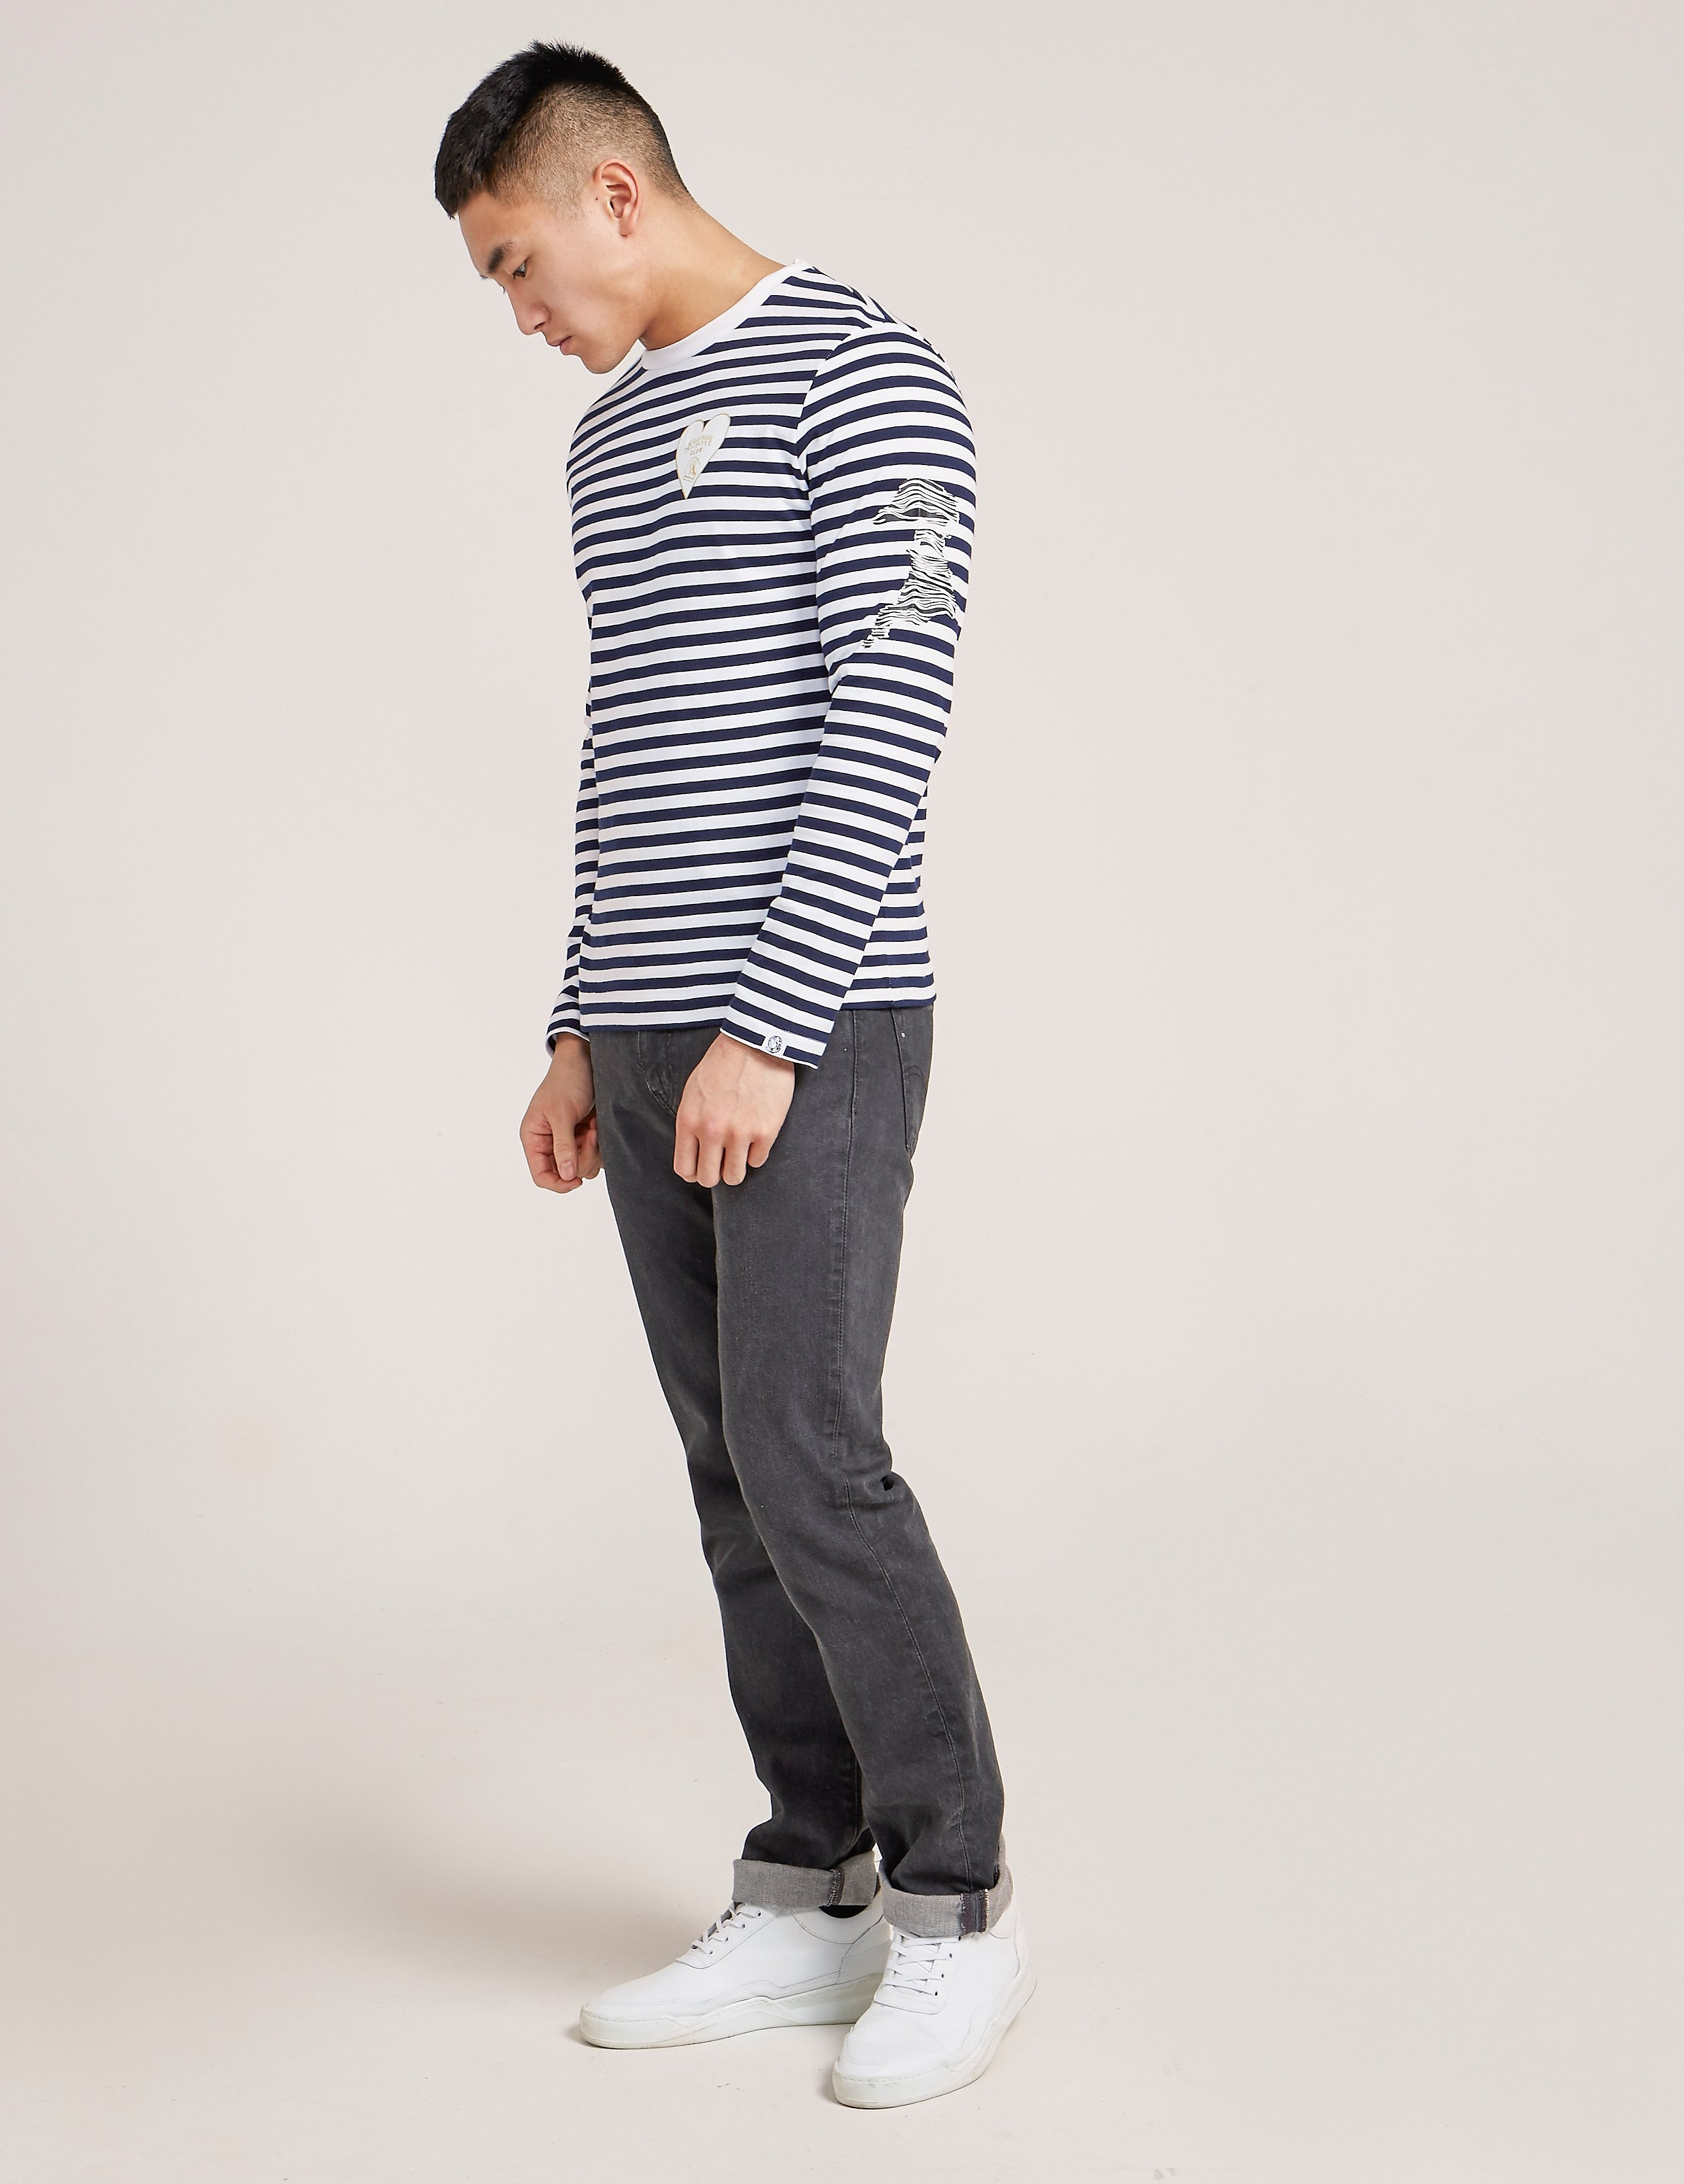 Billionaire Boys Club Damage Stripe Long Sleeve T-Shirt